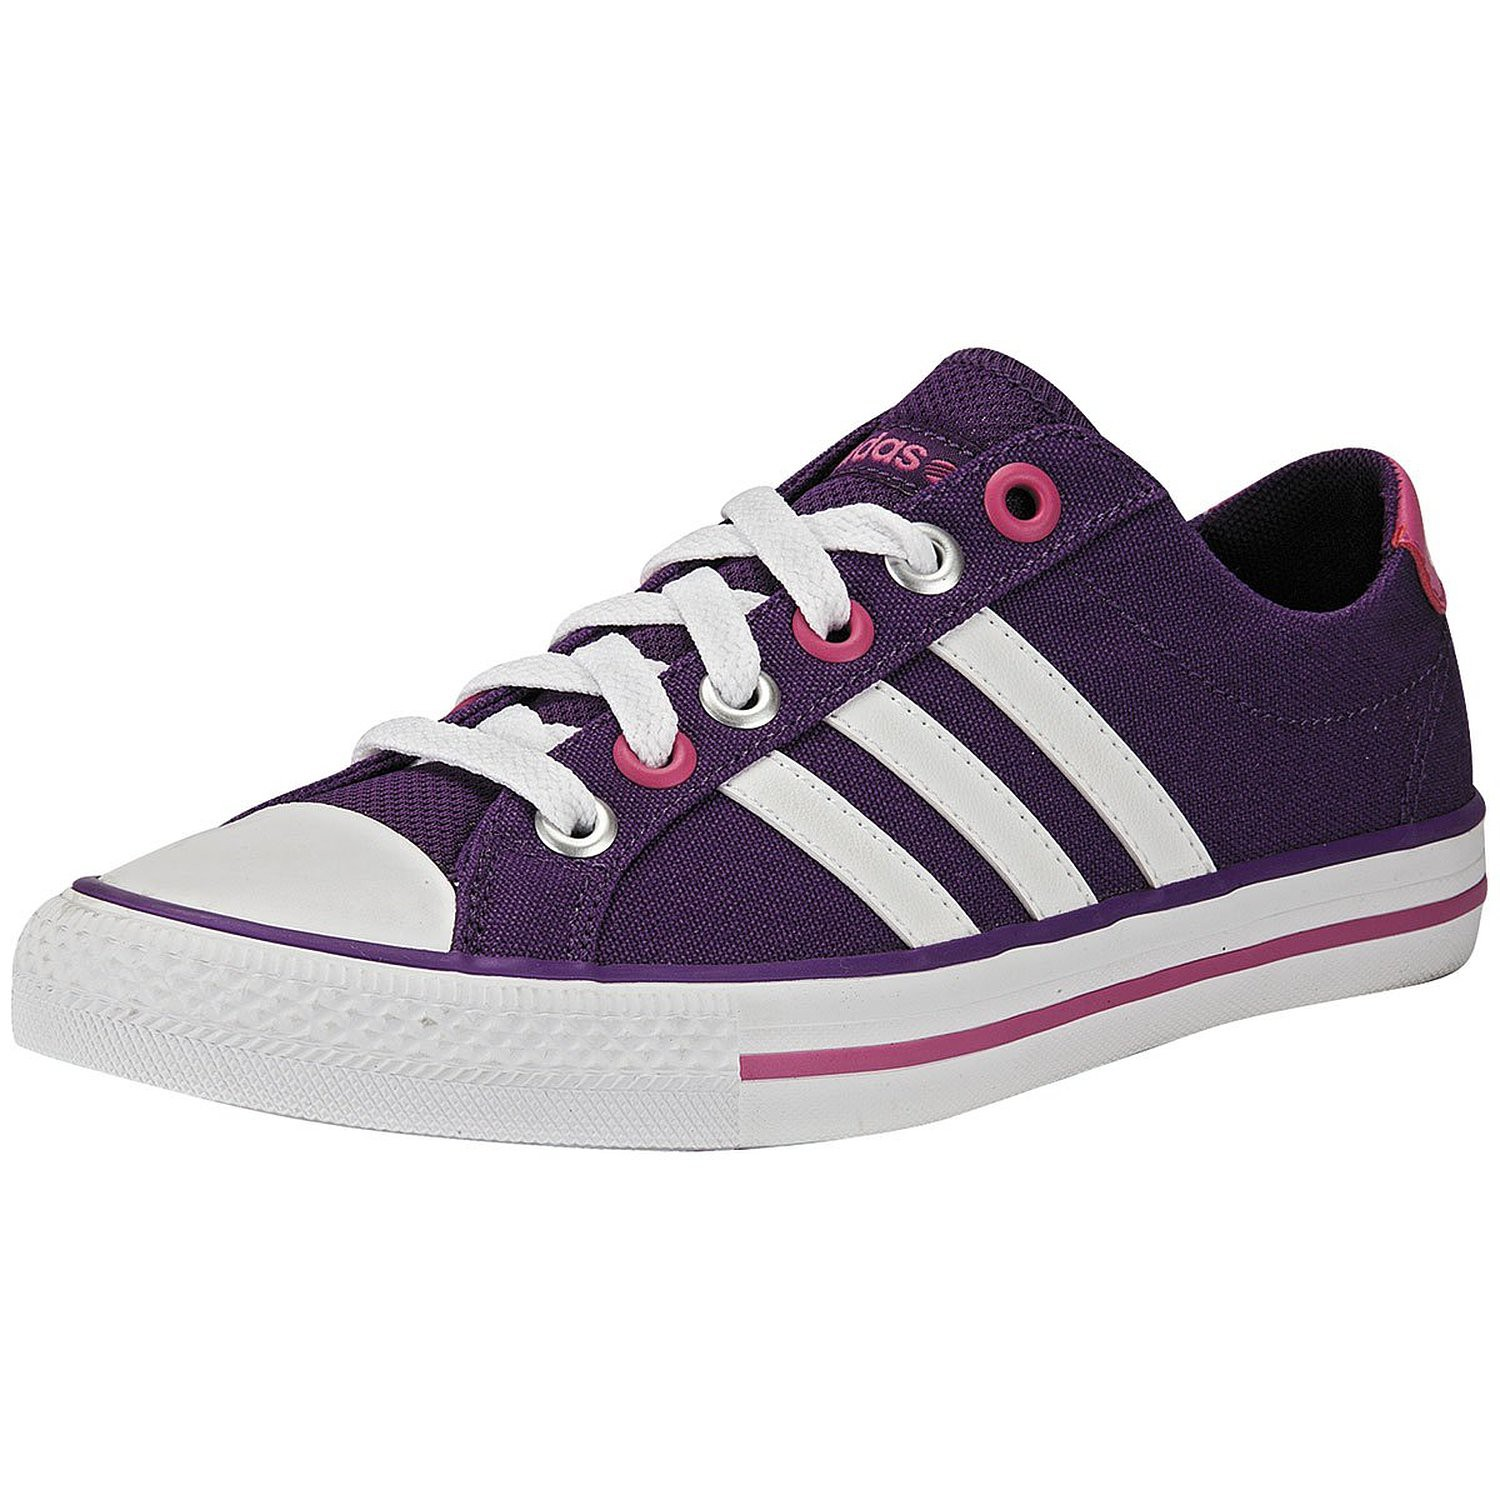 quality design 75063 cc622 authentic adidas neo label canvas vl 3 stripes sneaker lifestyle schuhe  lila pink weiss ebay c774d